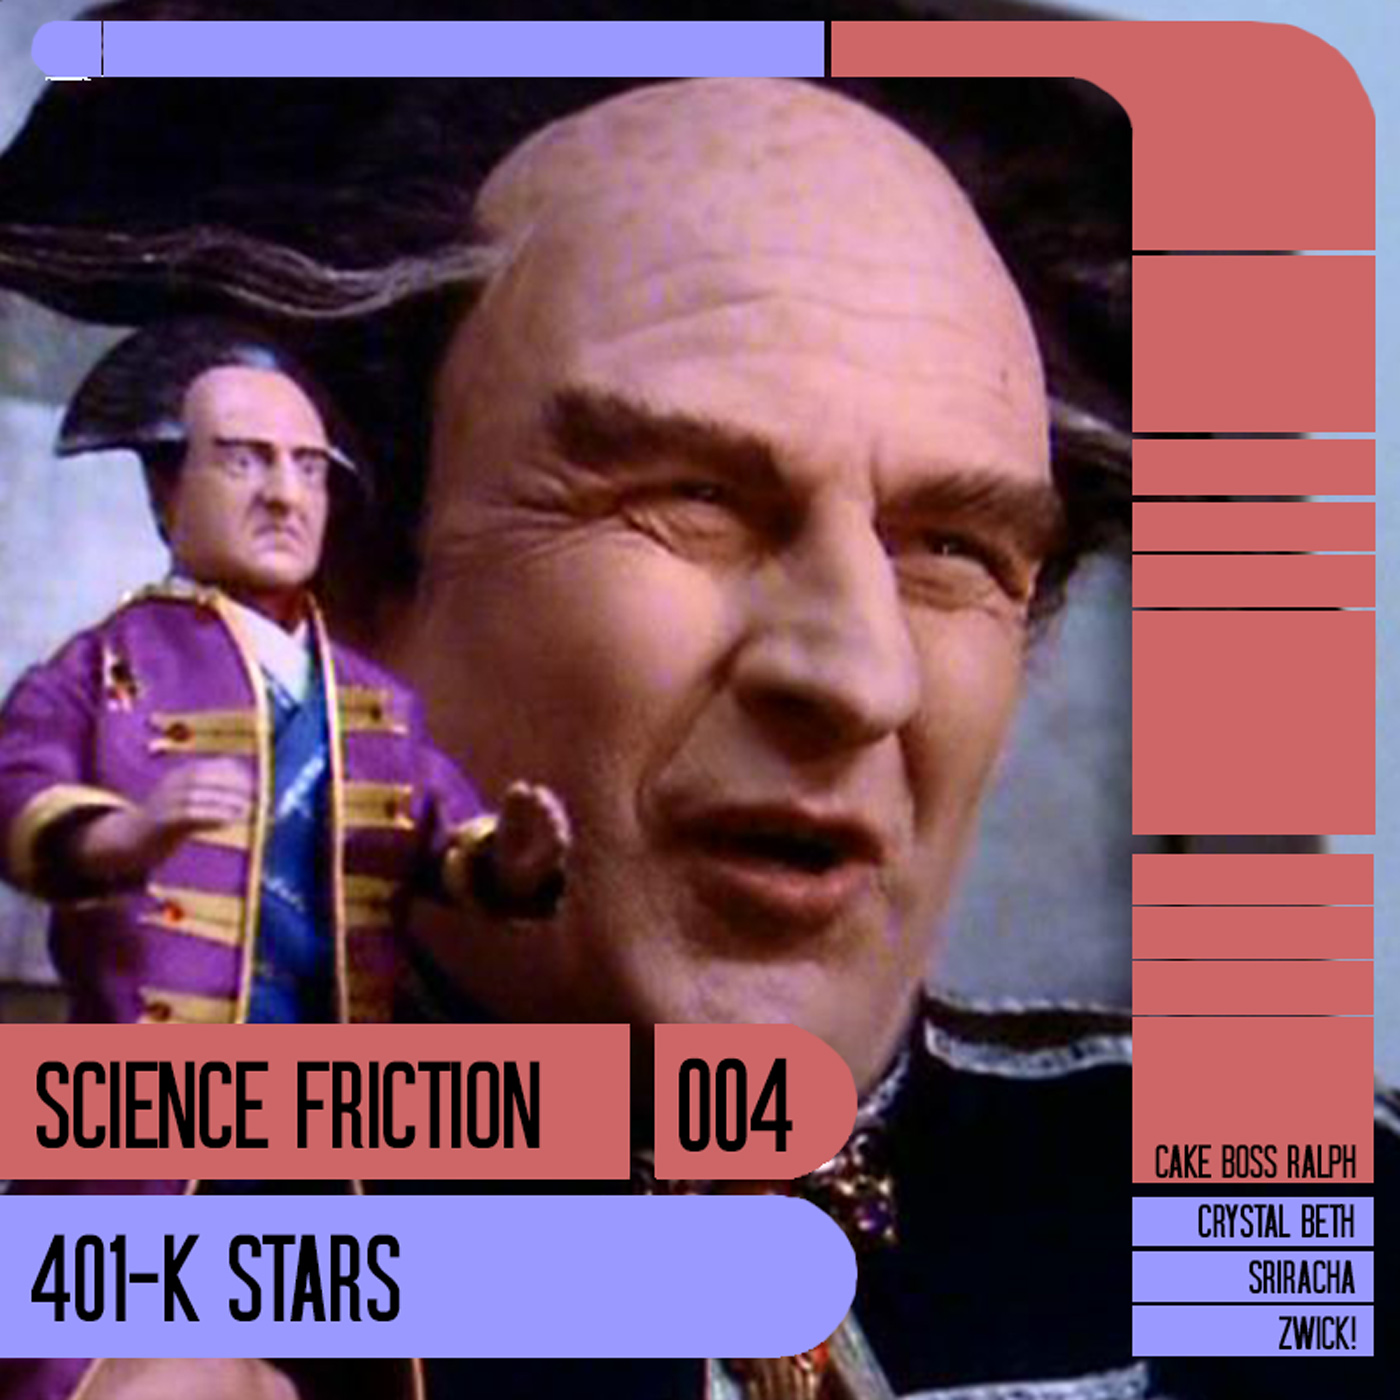 Science Friction 004: 401 K-Stars